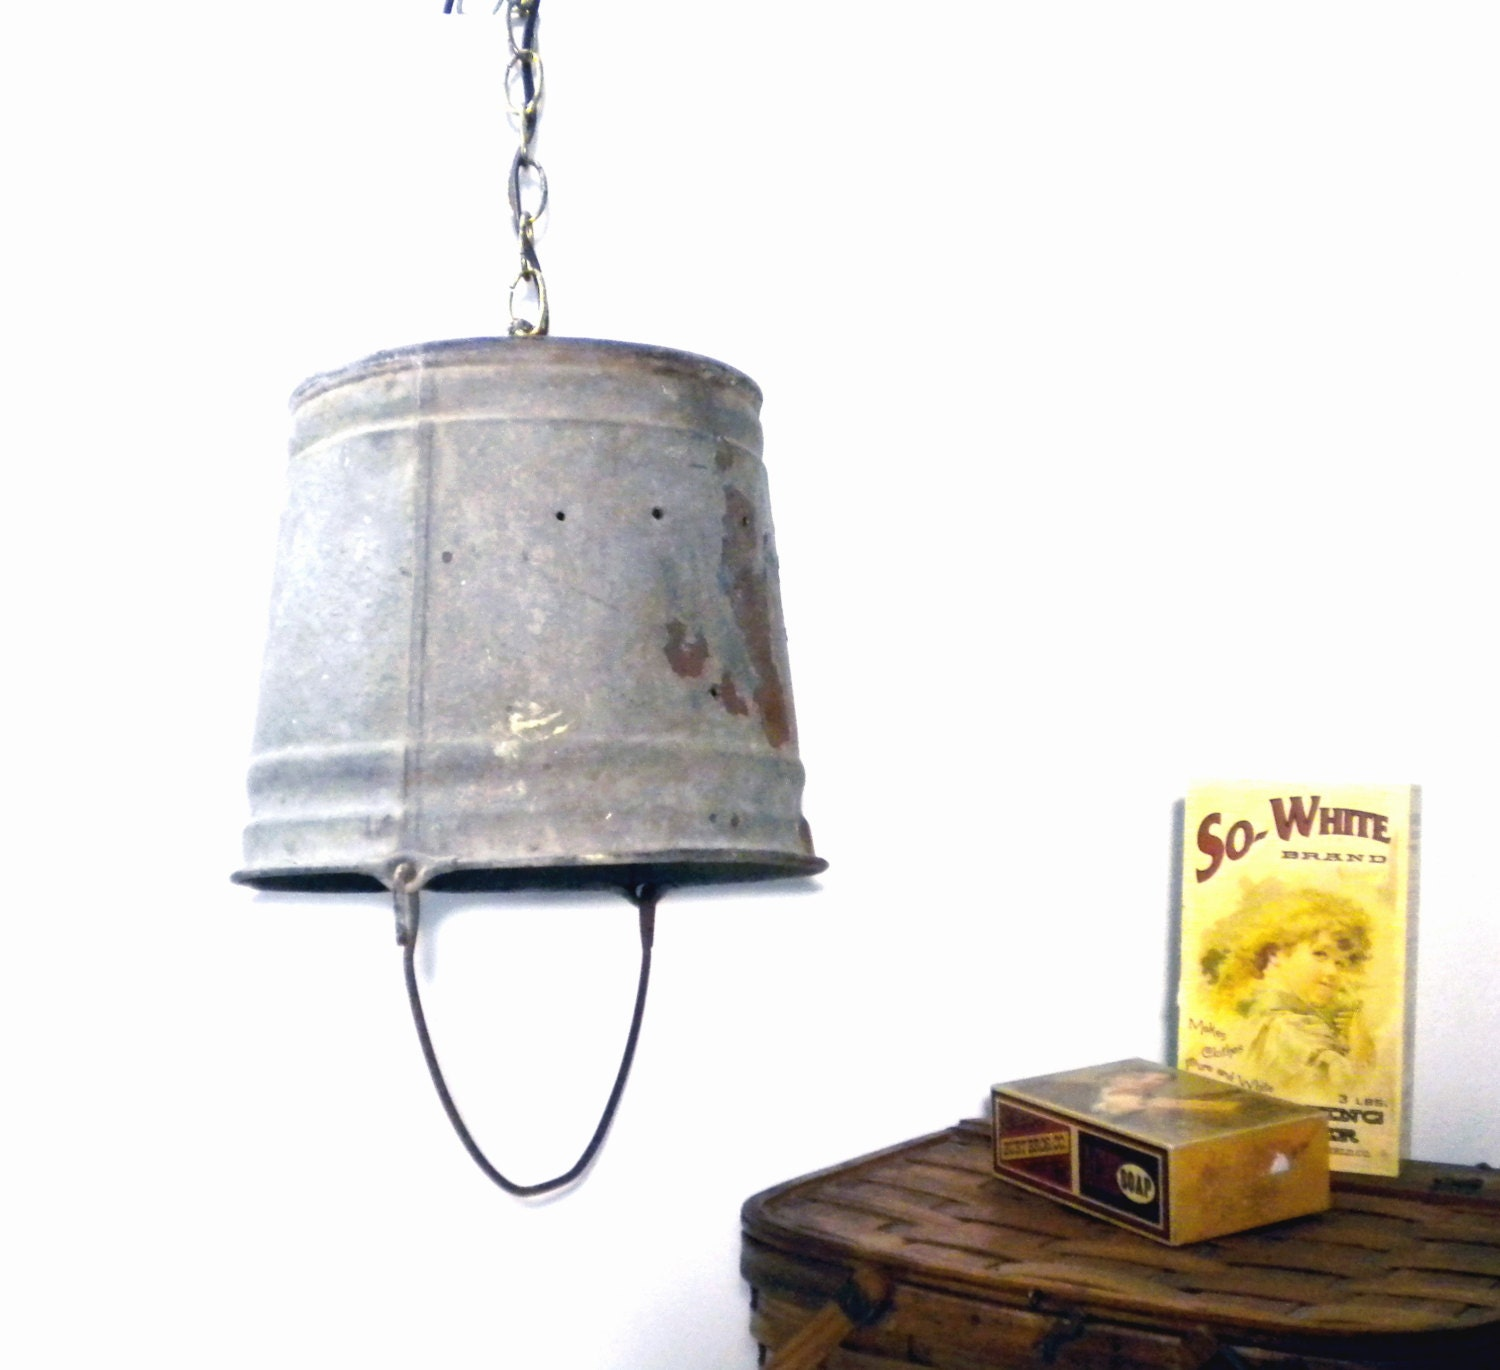 Rustic Copper Pail Pendant Light By Cre8iveconcrete On Etsy: Vintage Swag Lamp Rustic Galvanized Metal By OceansideCastle